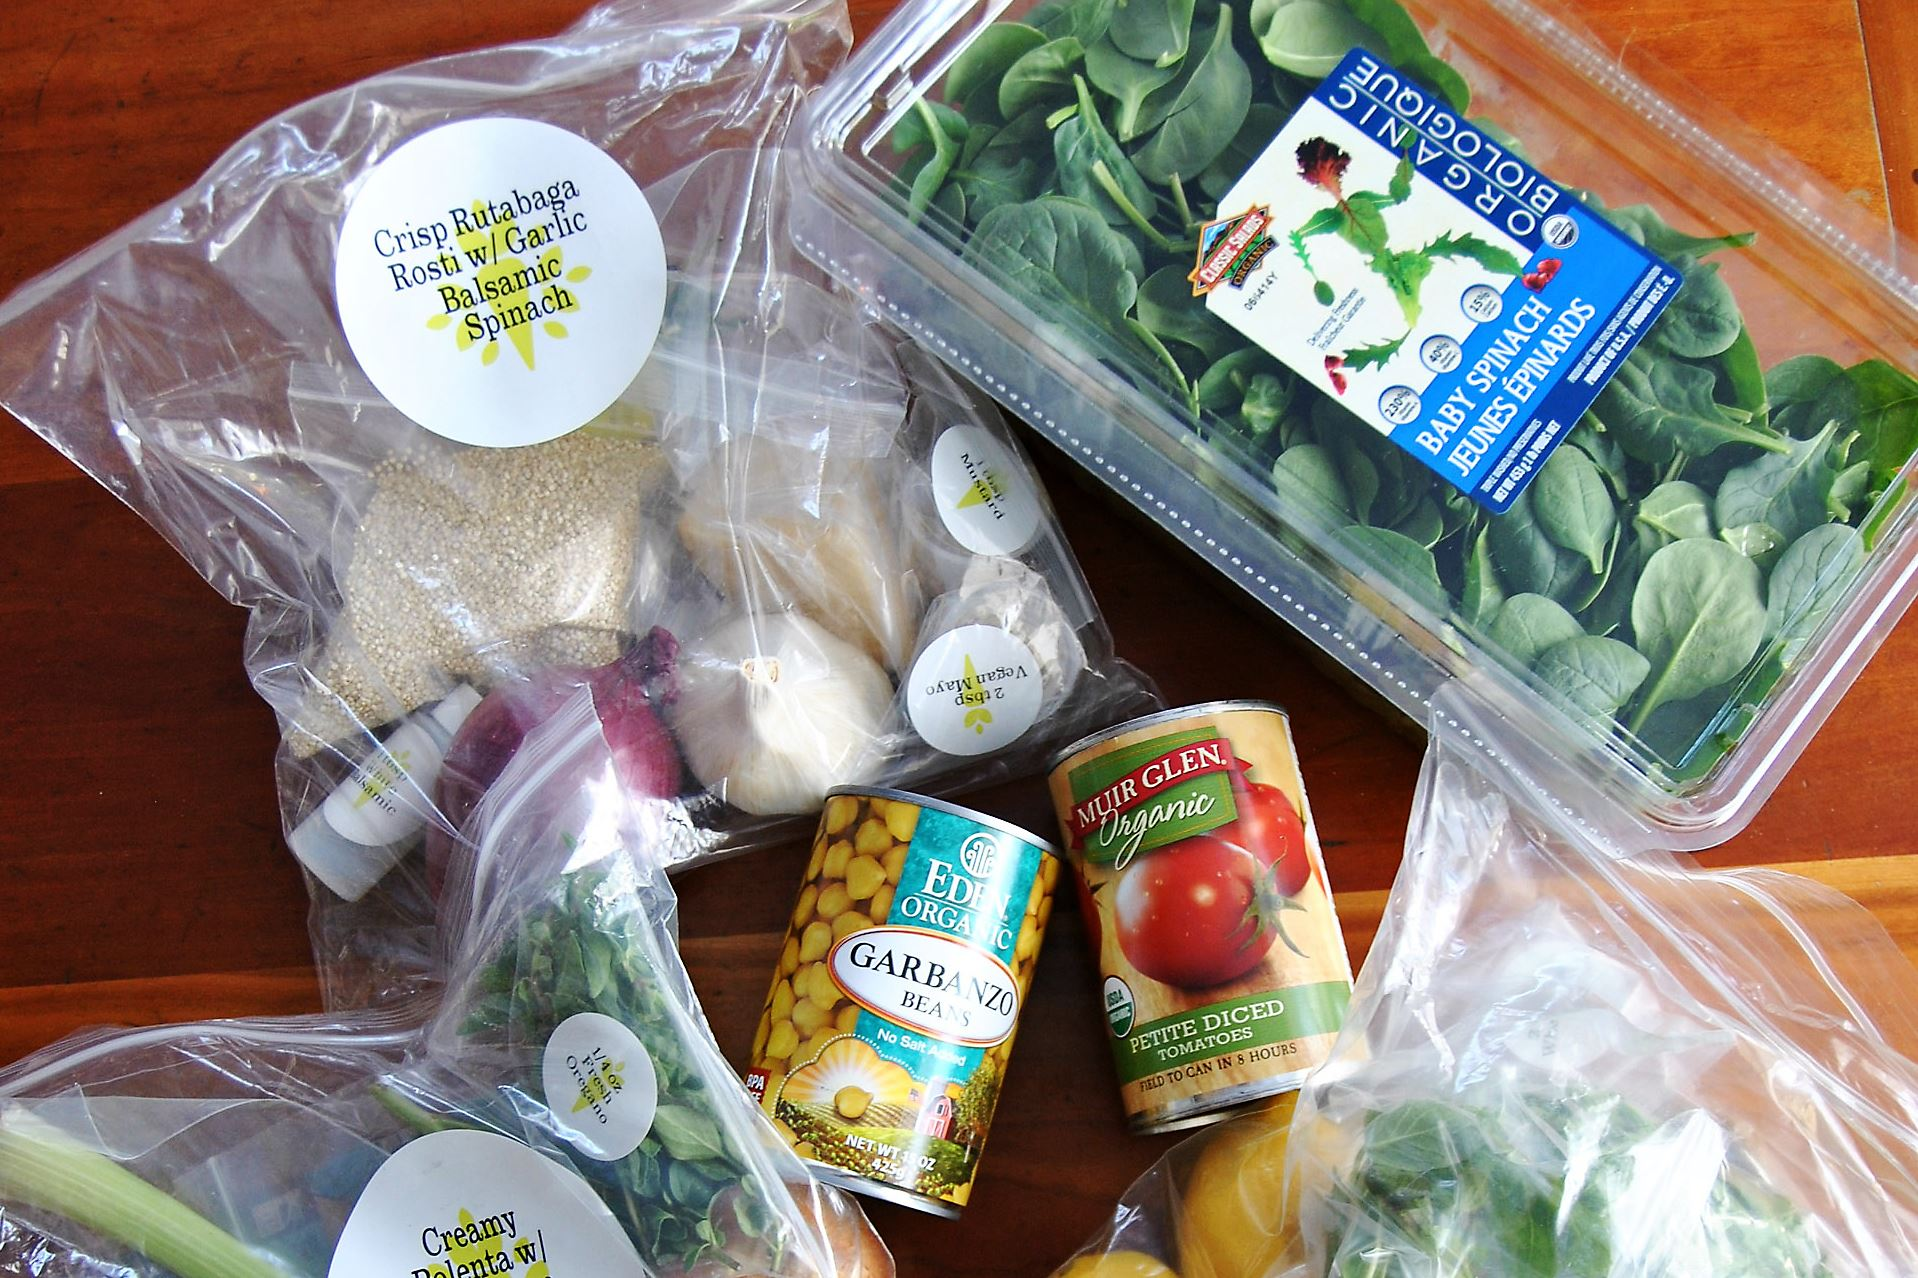 dinnerinabox0309-13 Purple Carrot Meal Box.